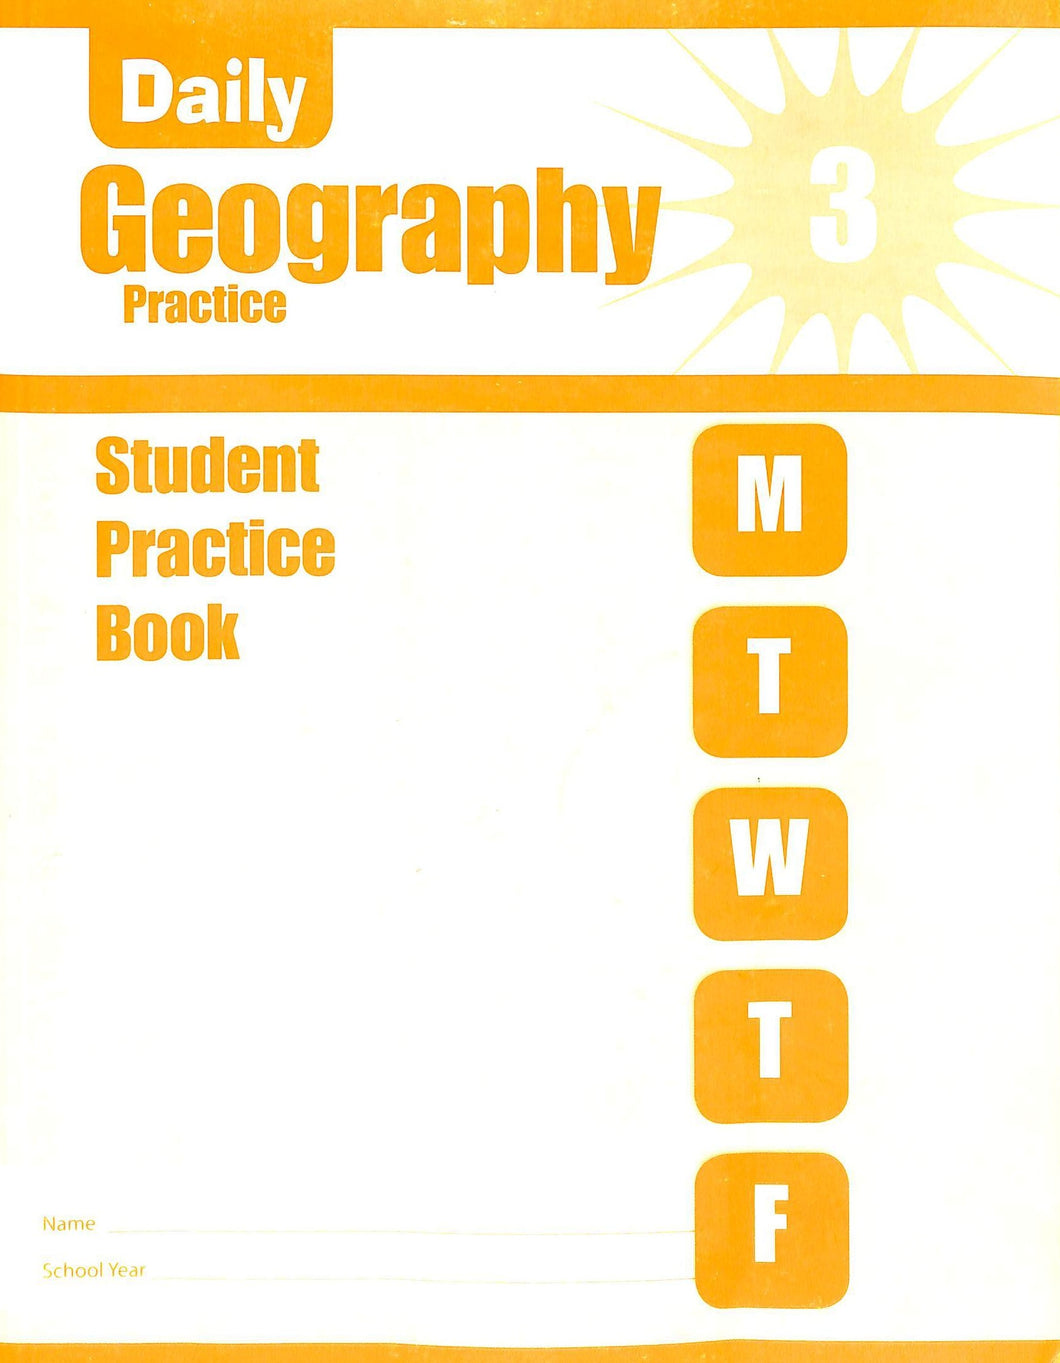 Daily Geography Practice 3 Workbook